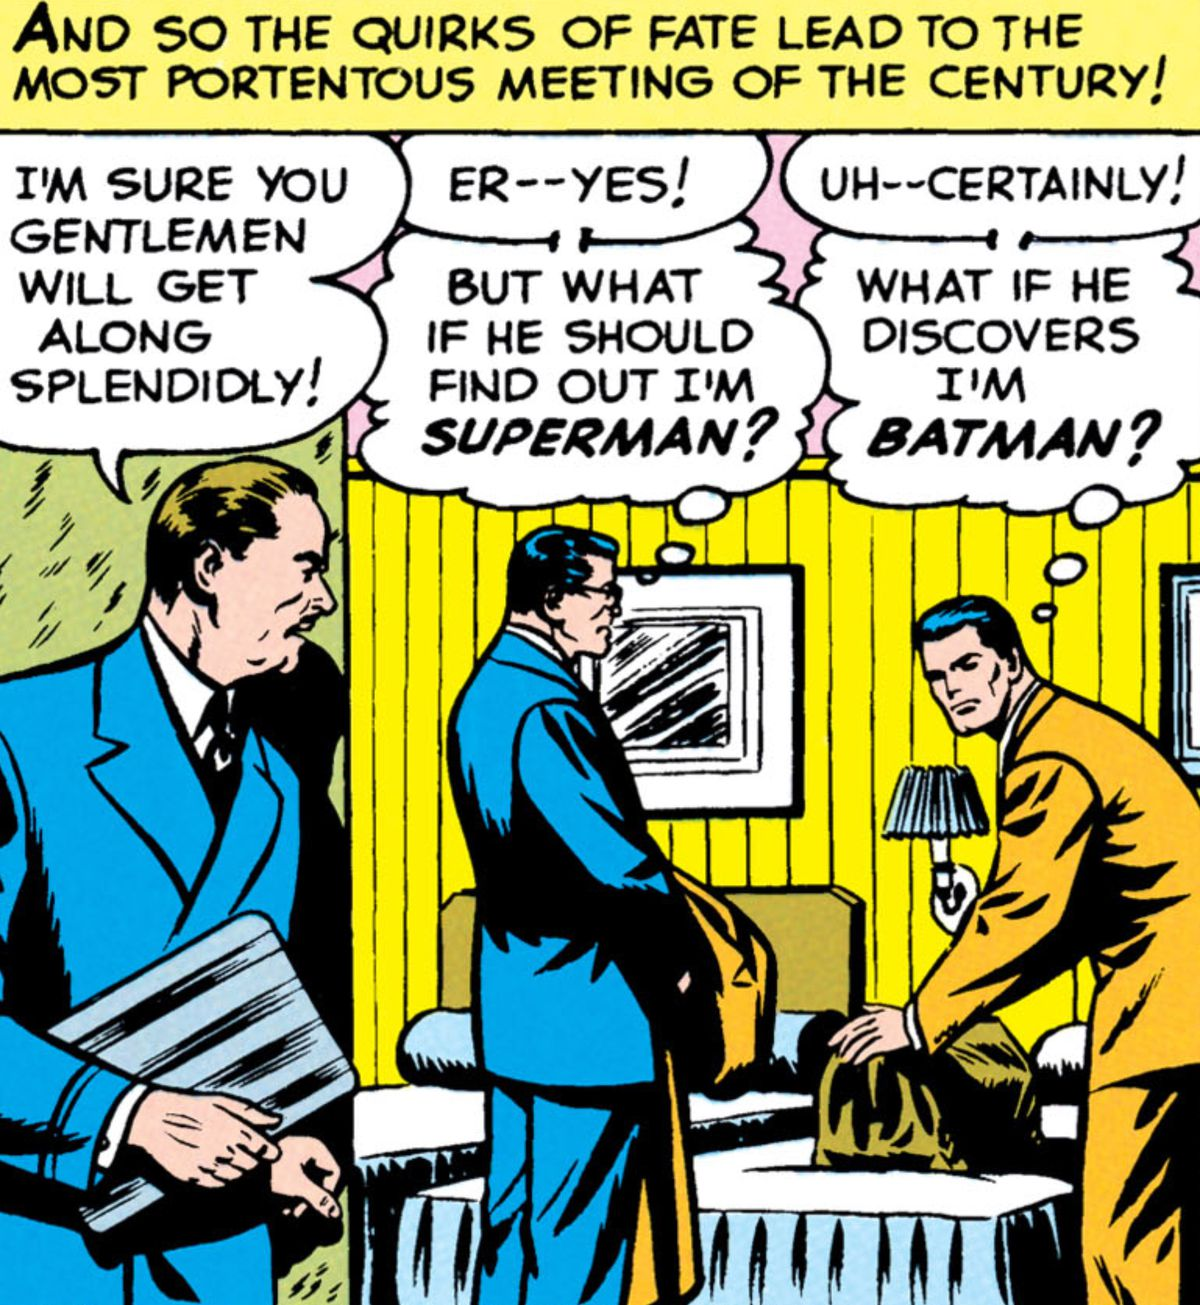 """A porter shows Clark Kent and Bruce Wayne to their shared room. """"But what if he should find out I'm Superman?"""" Clark thinks. """"What if he discovers I'm Batman?"""" Bruce wonders, in Superman #76, DC Comics (1952)."""